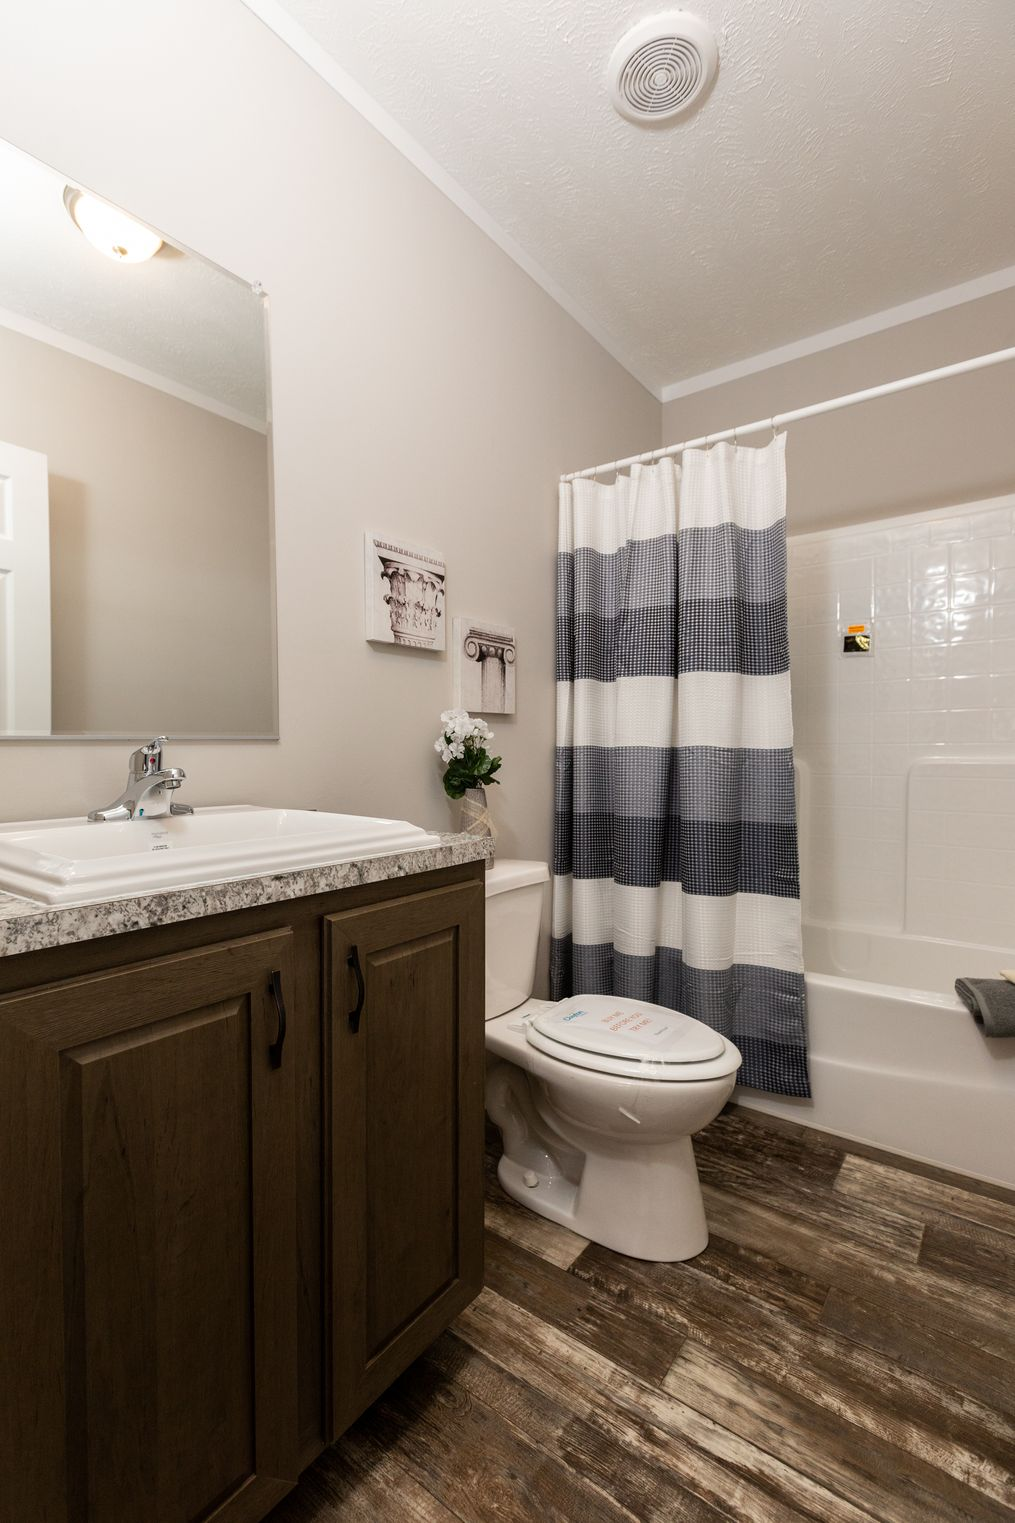 The CLASSIC 56D Guest Bathroom. This Manufactured Mobile Home features 3 bedrooms and 2 baths.